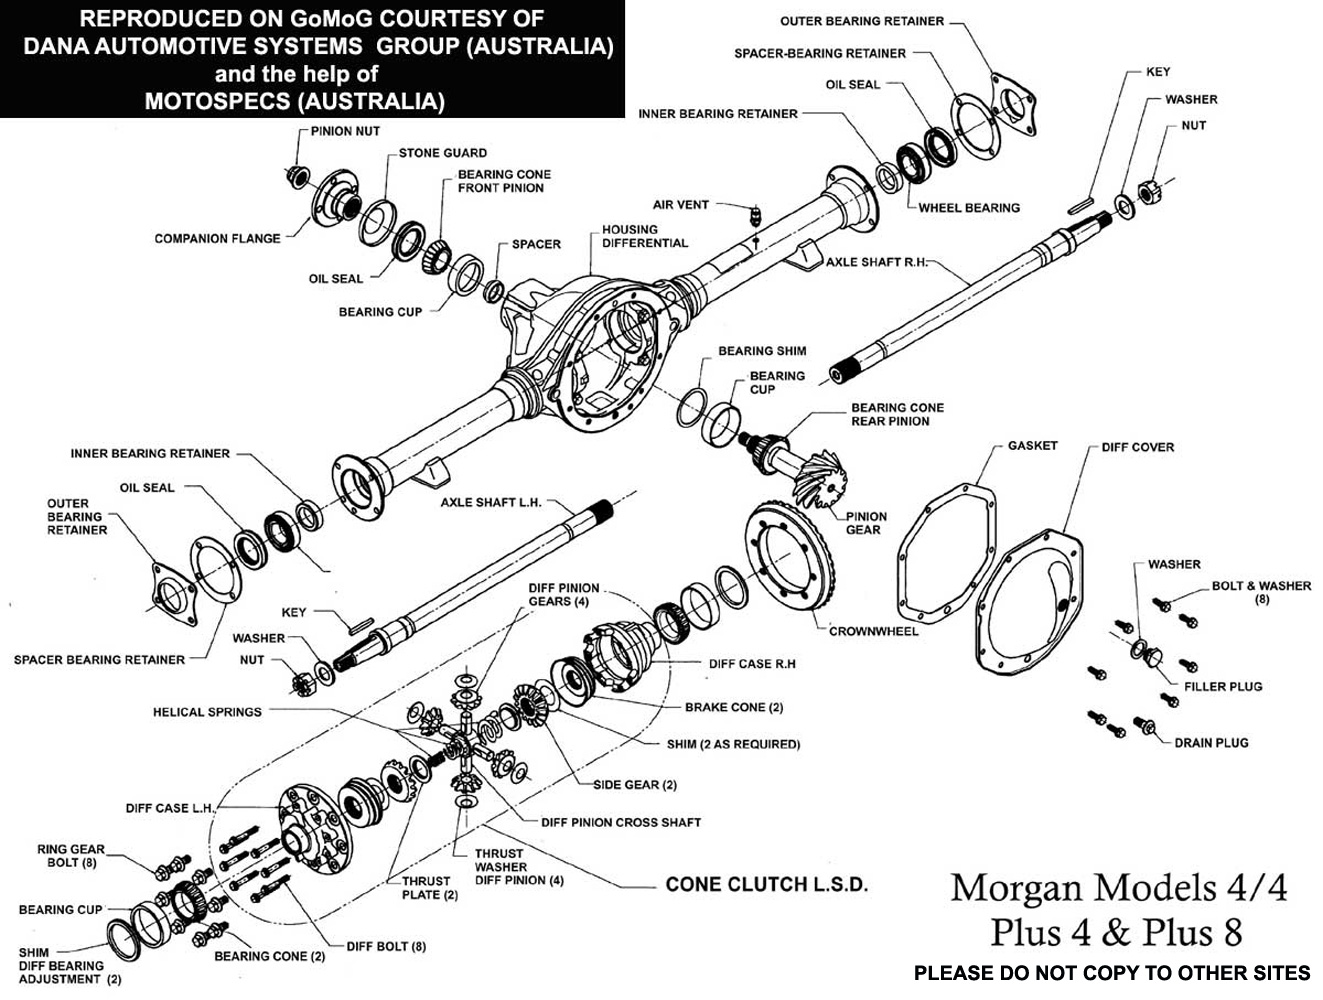 Morgan Sports Car Plus 8s Range Rover 3 5 Wiring Diagram 101 Btr Axle